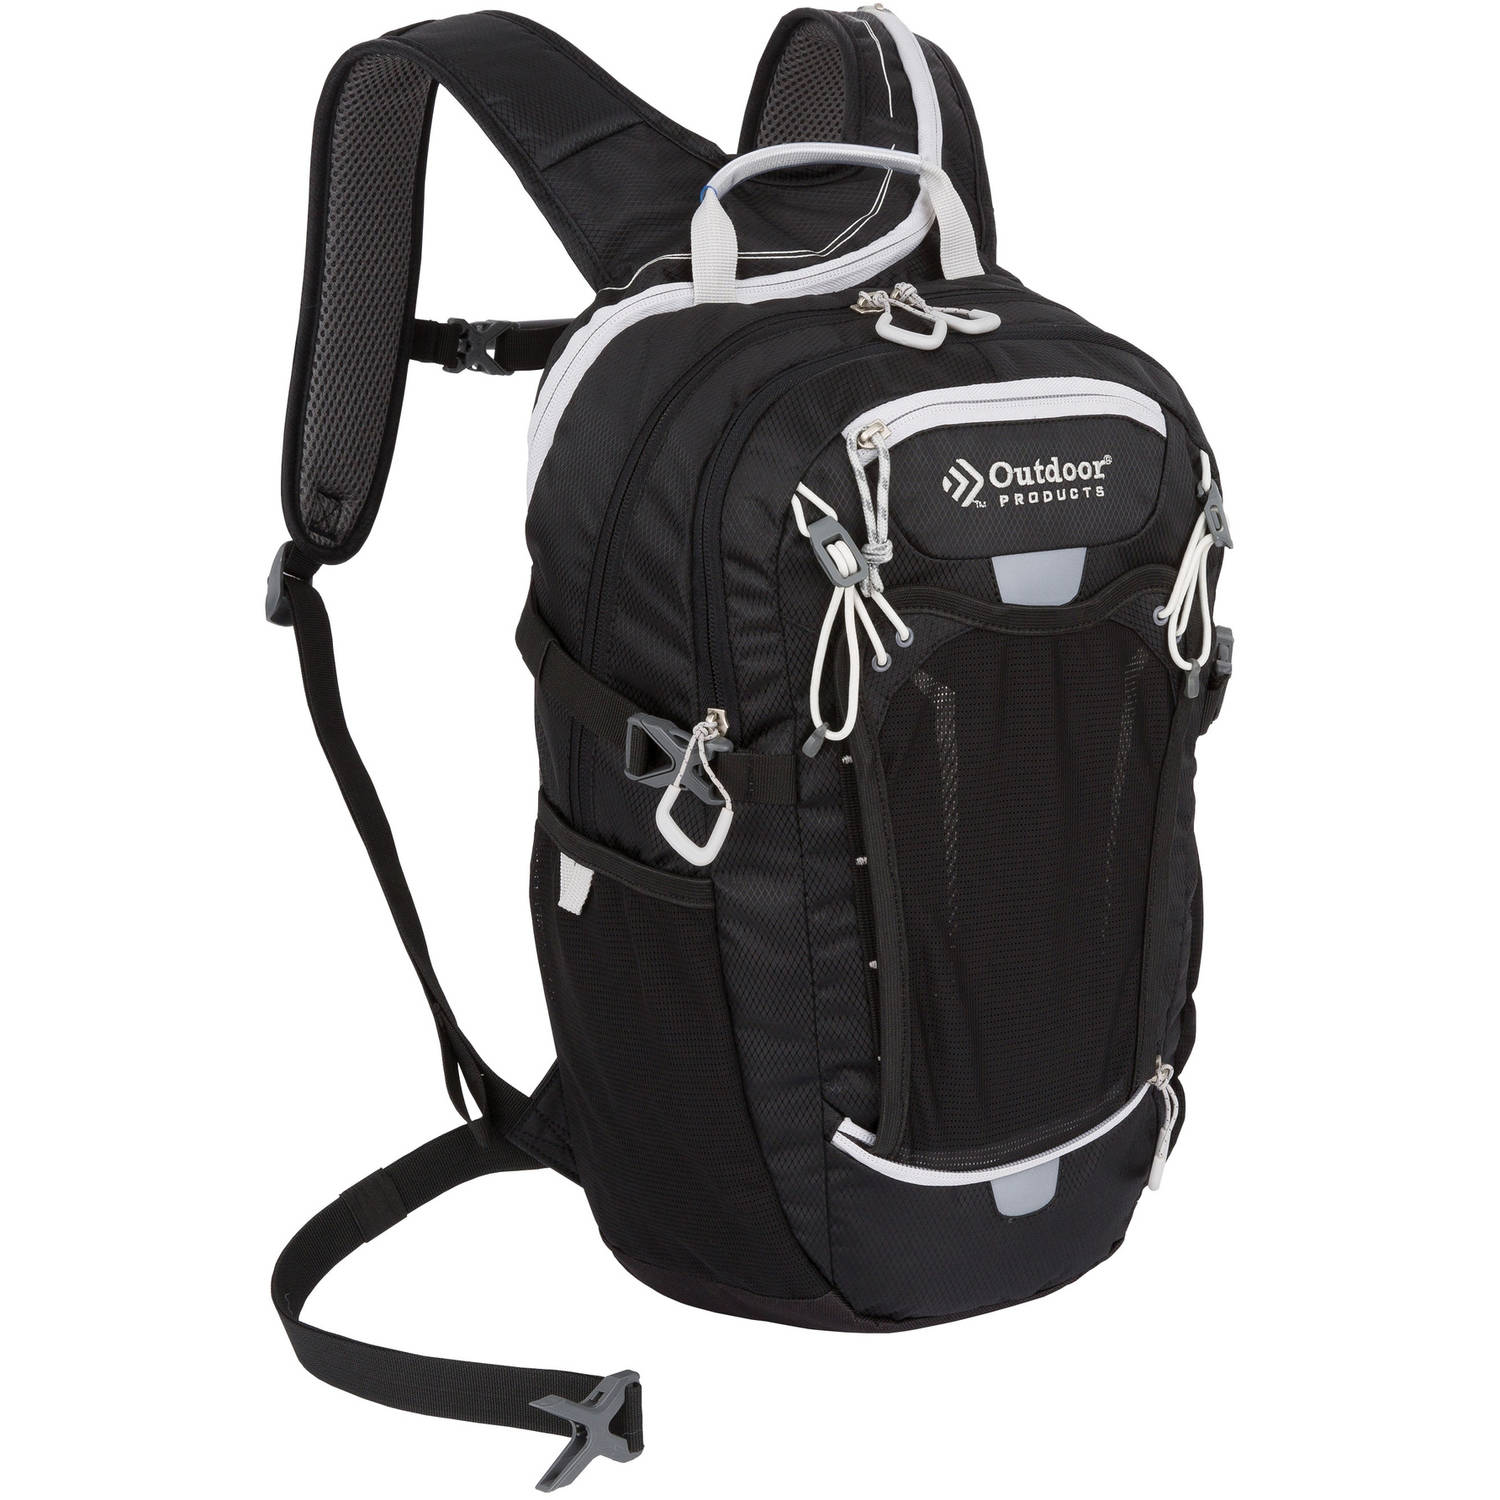 Outdoor Products Deluxe Hydration Pack Backpack with 2-Liter Reservoir